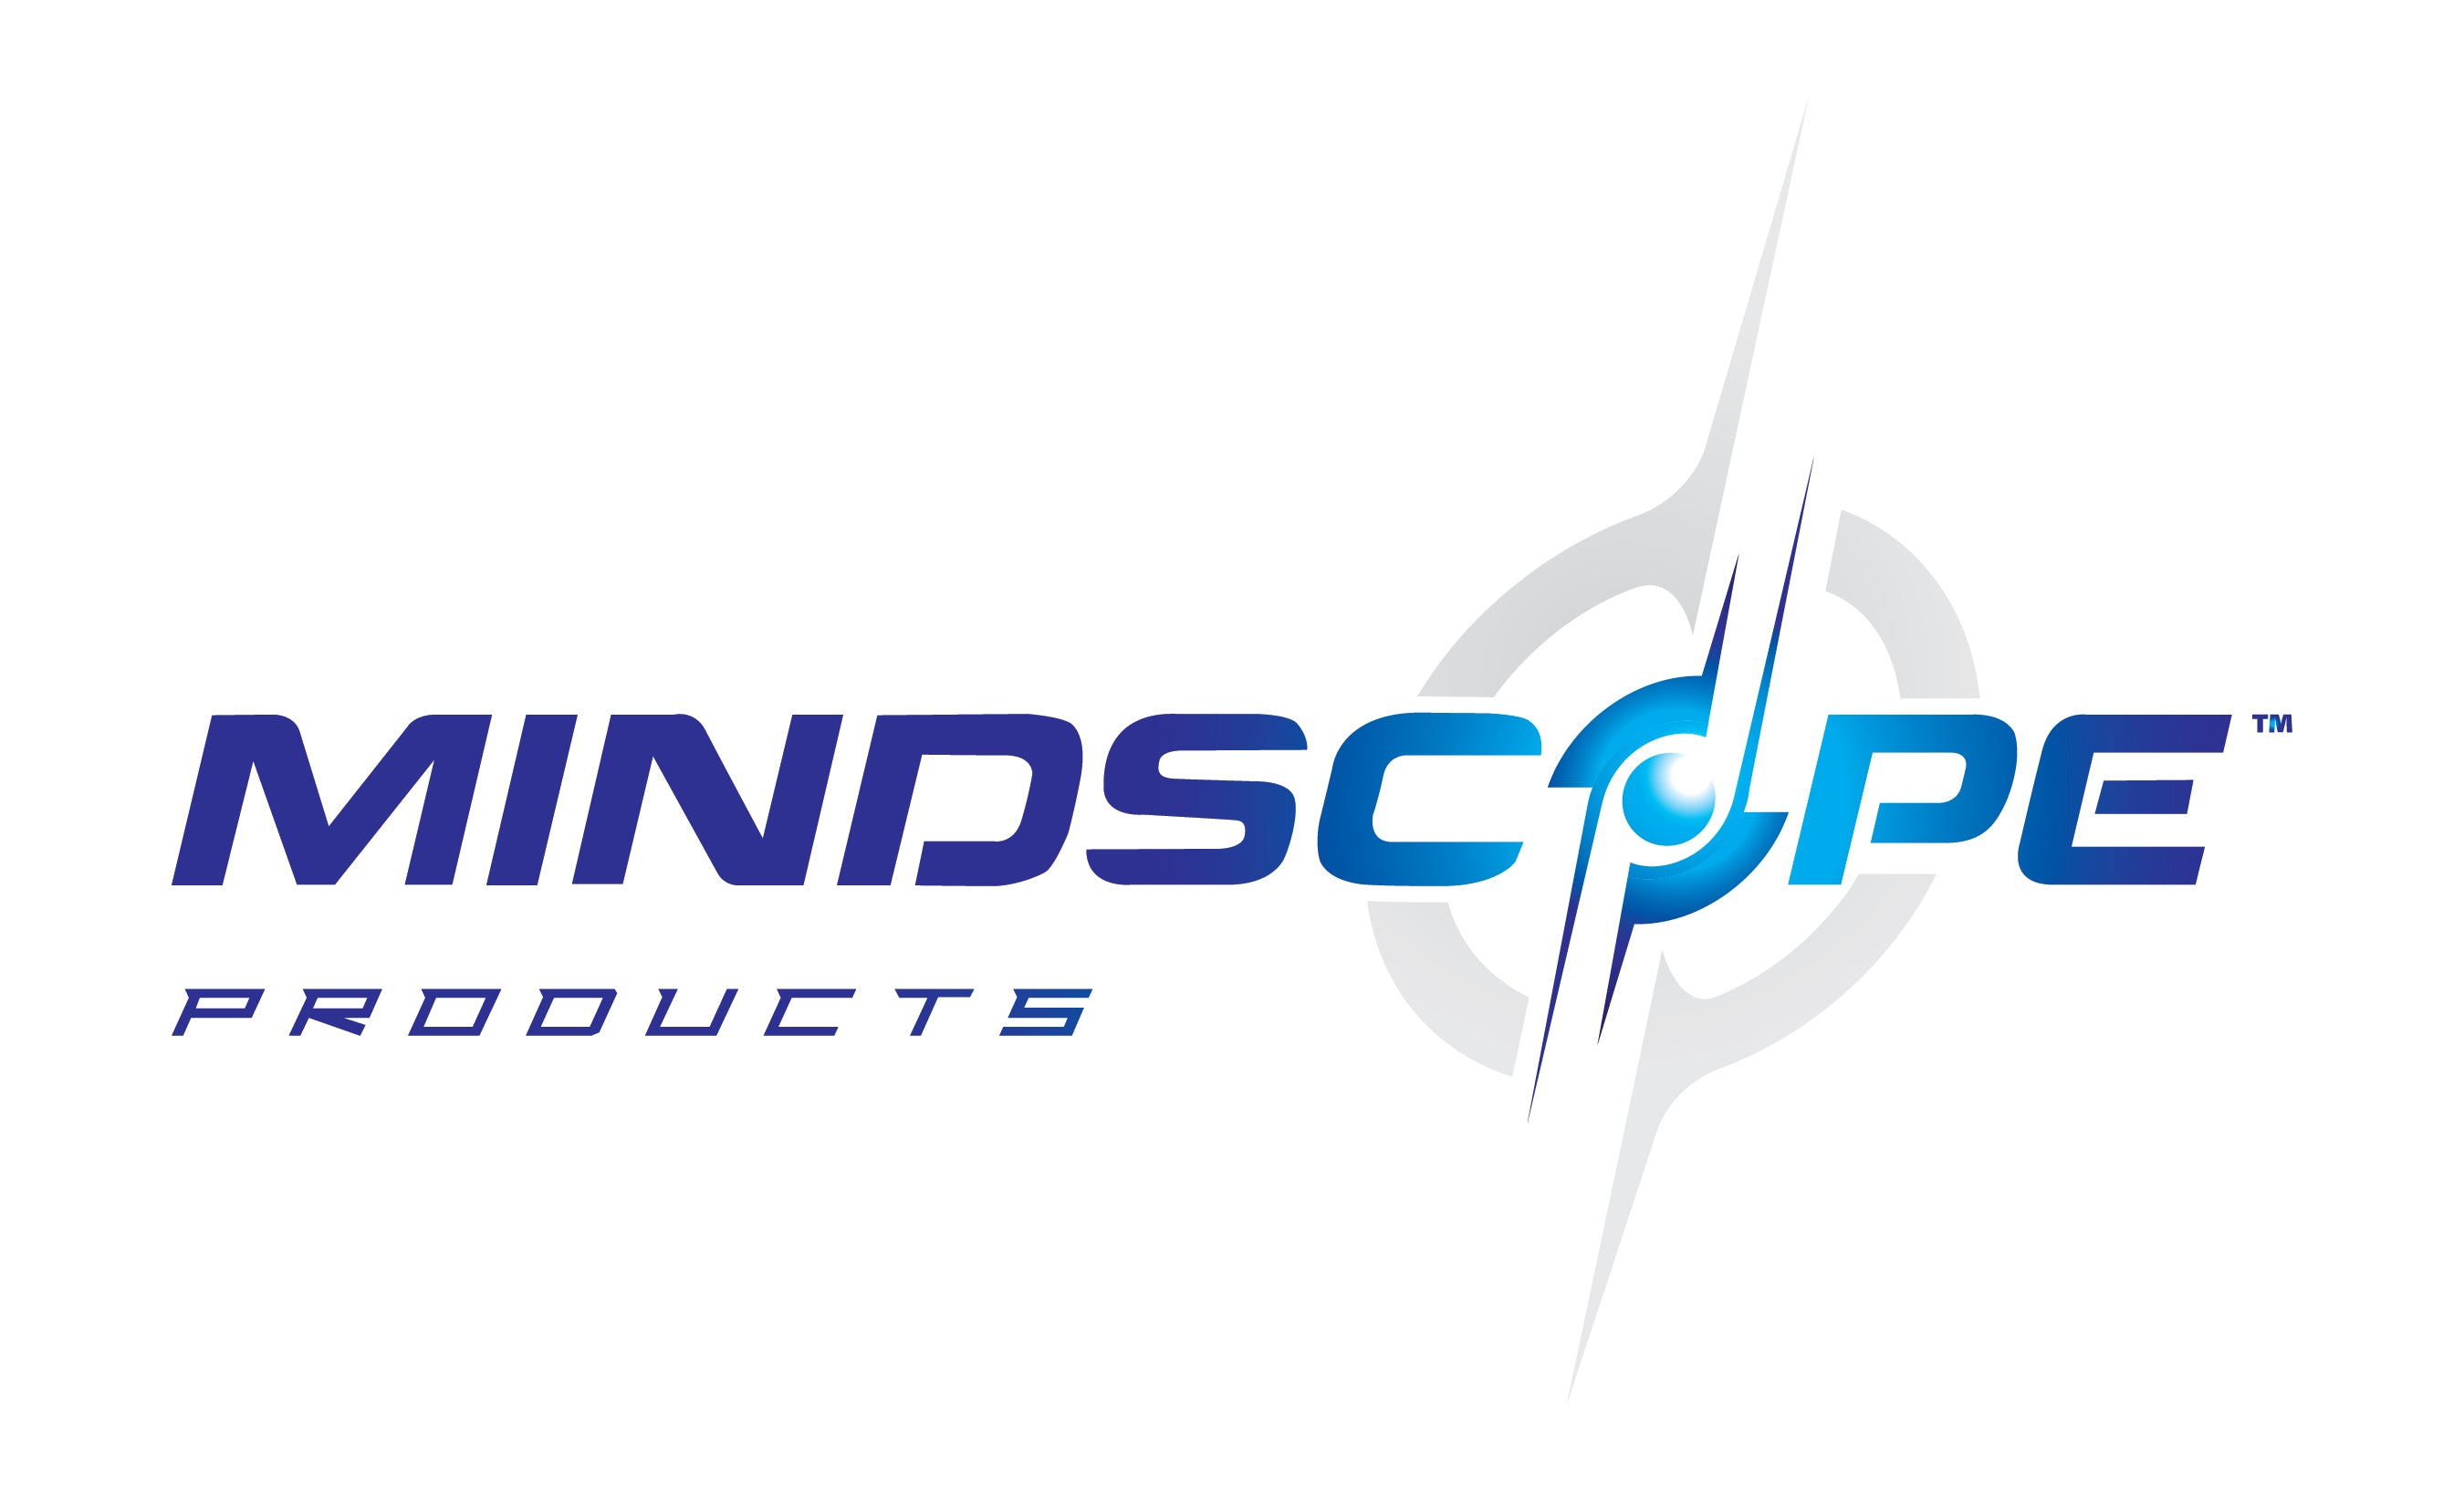 Mindscope Products